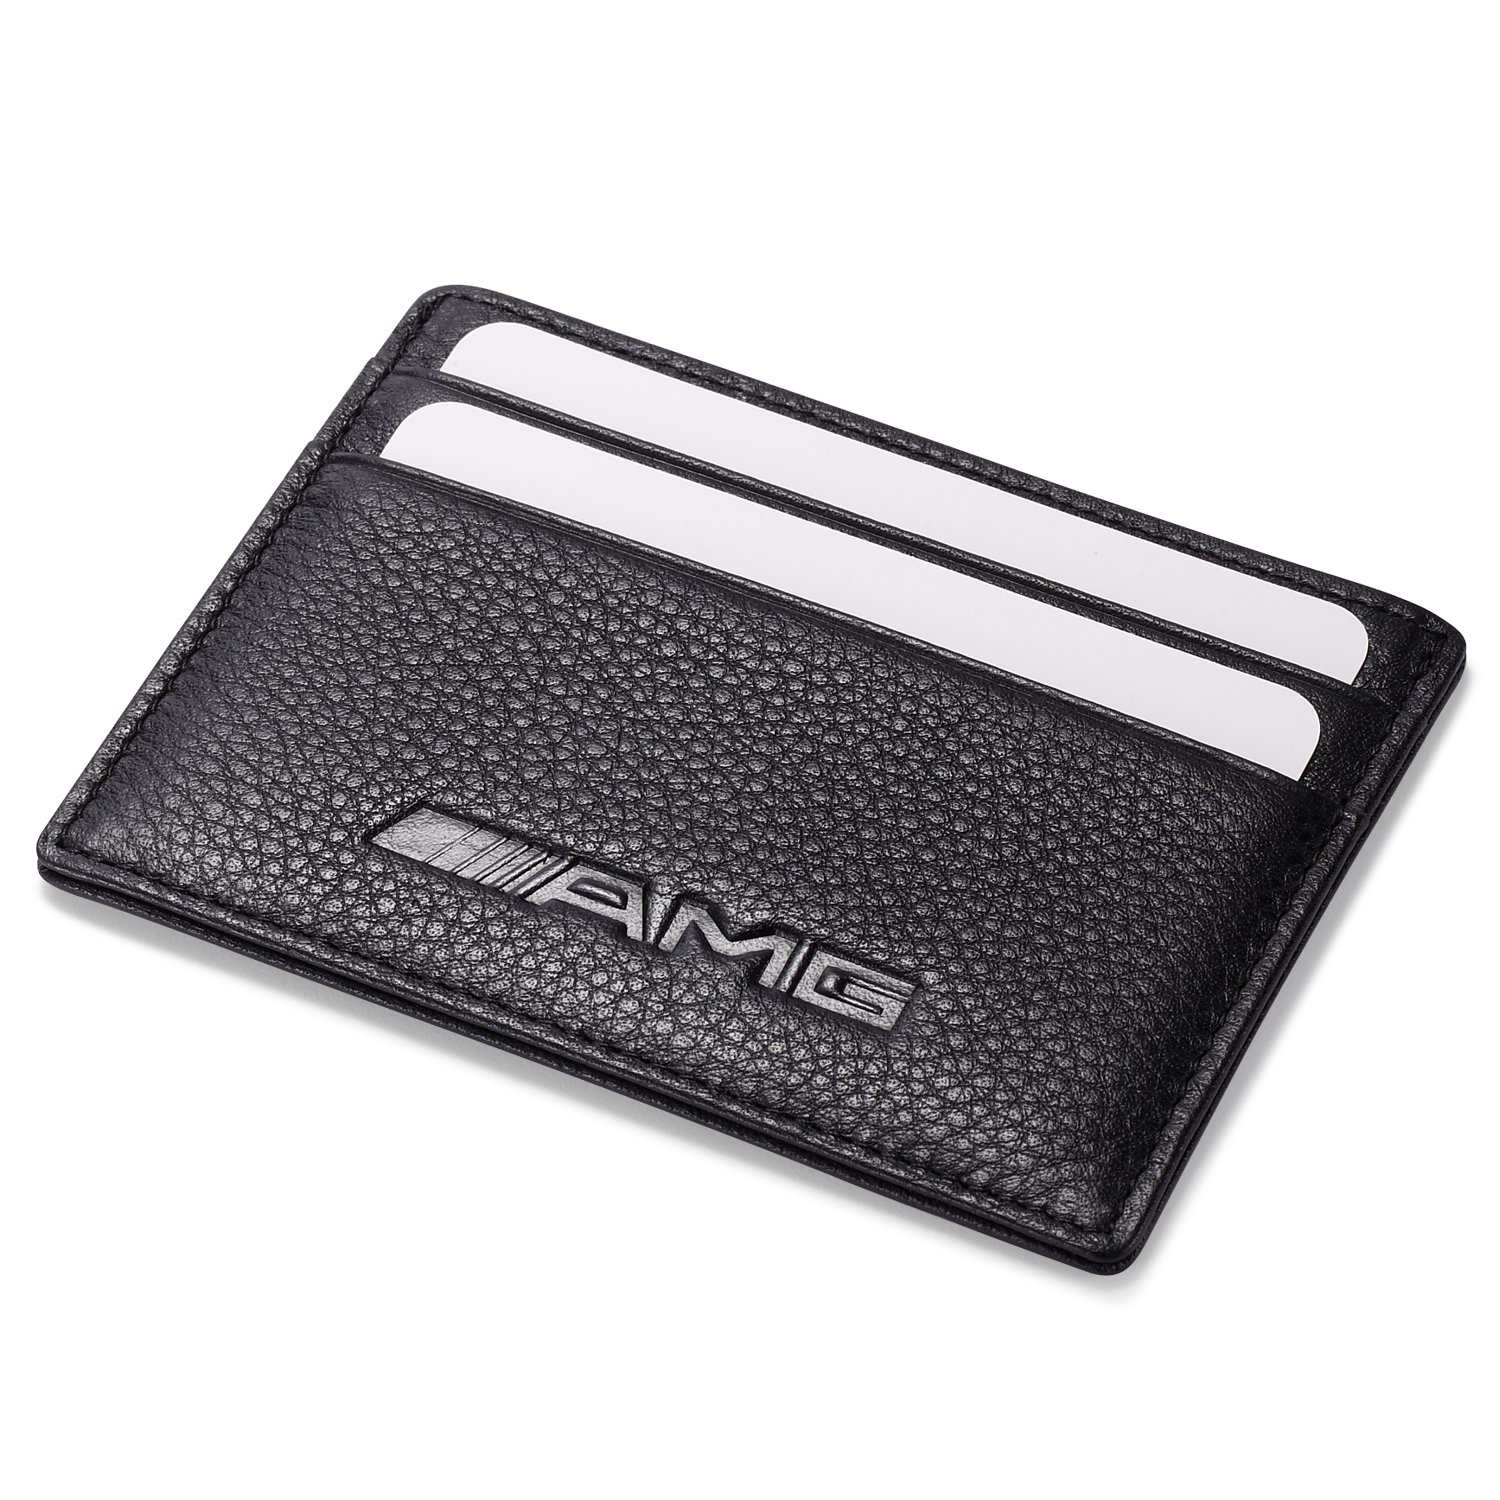 AMG Mercedes Benz Slim Wallet Black with 4 Credit Card Slots - Genuine Leather Leather Wallets